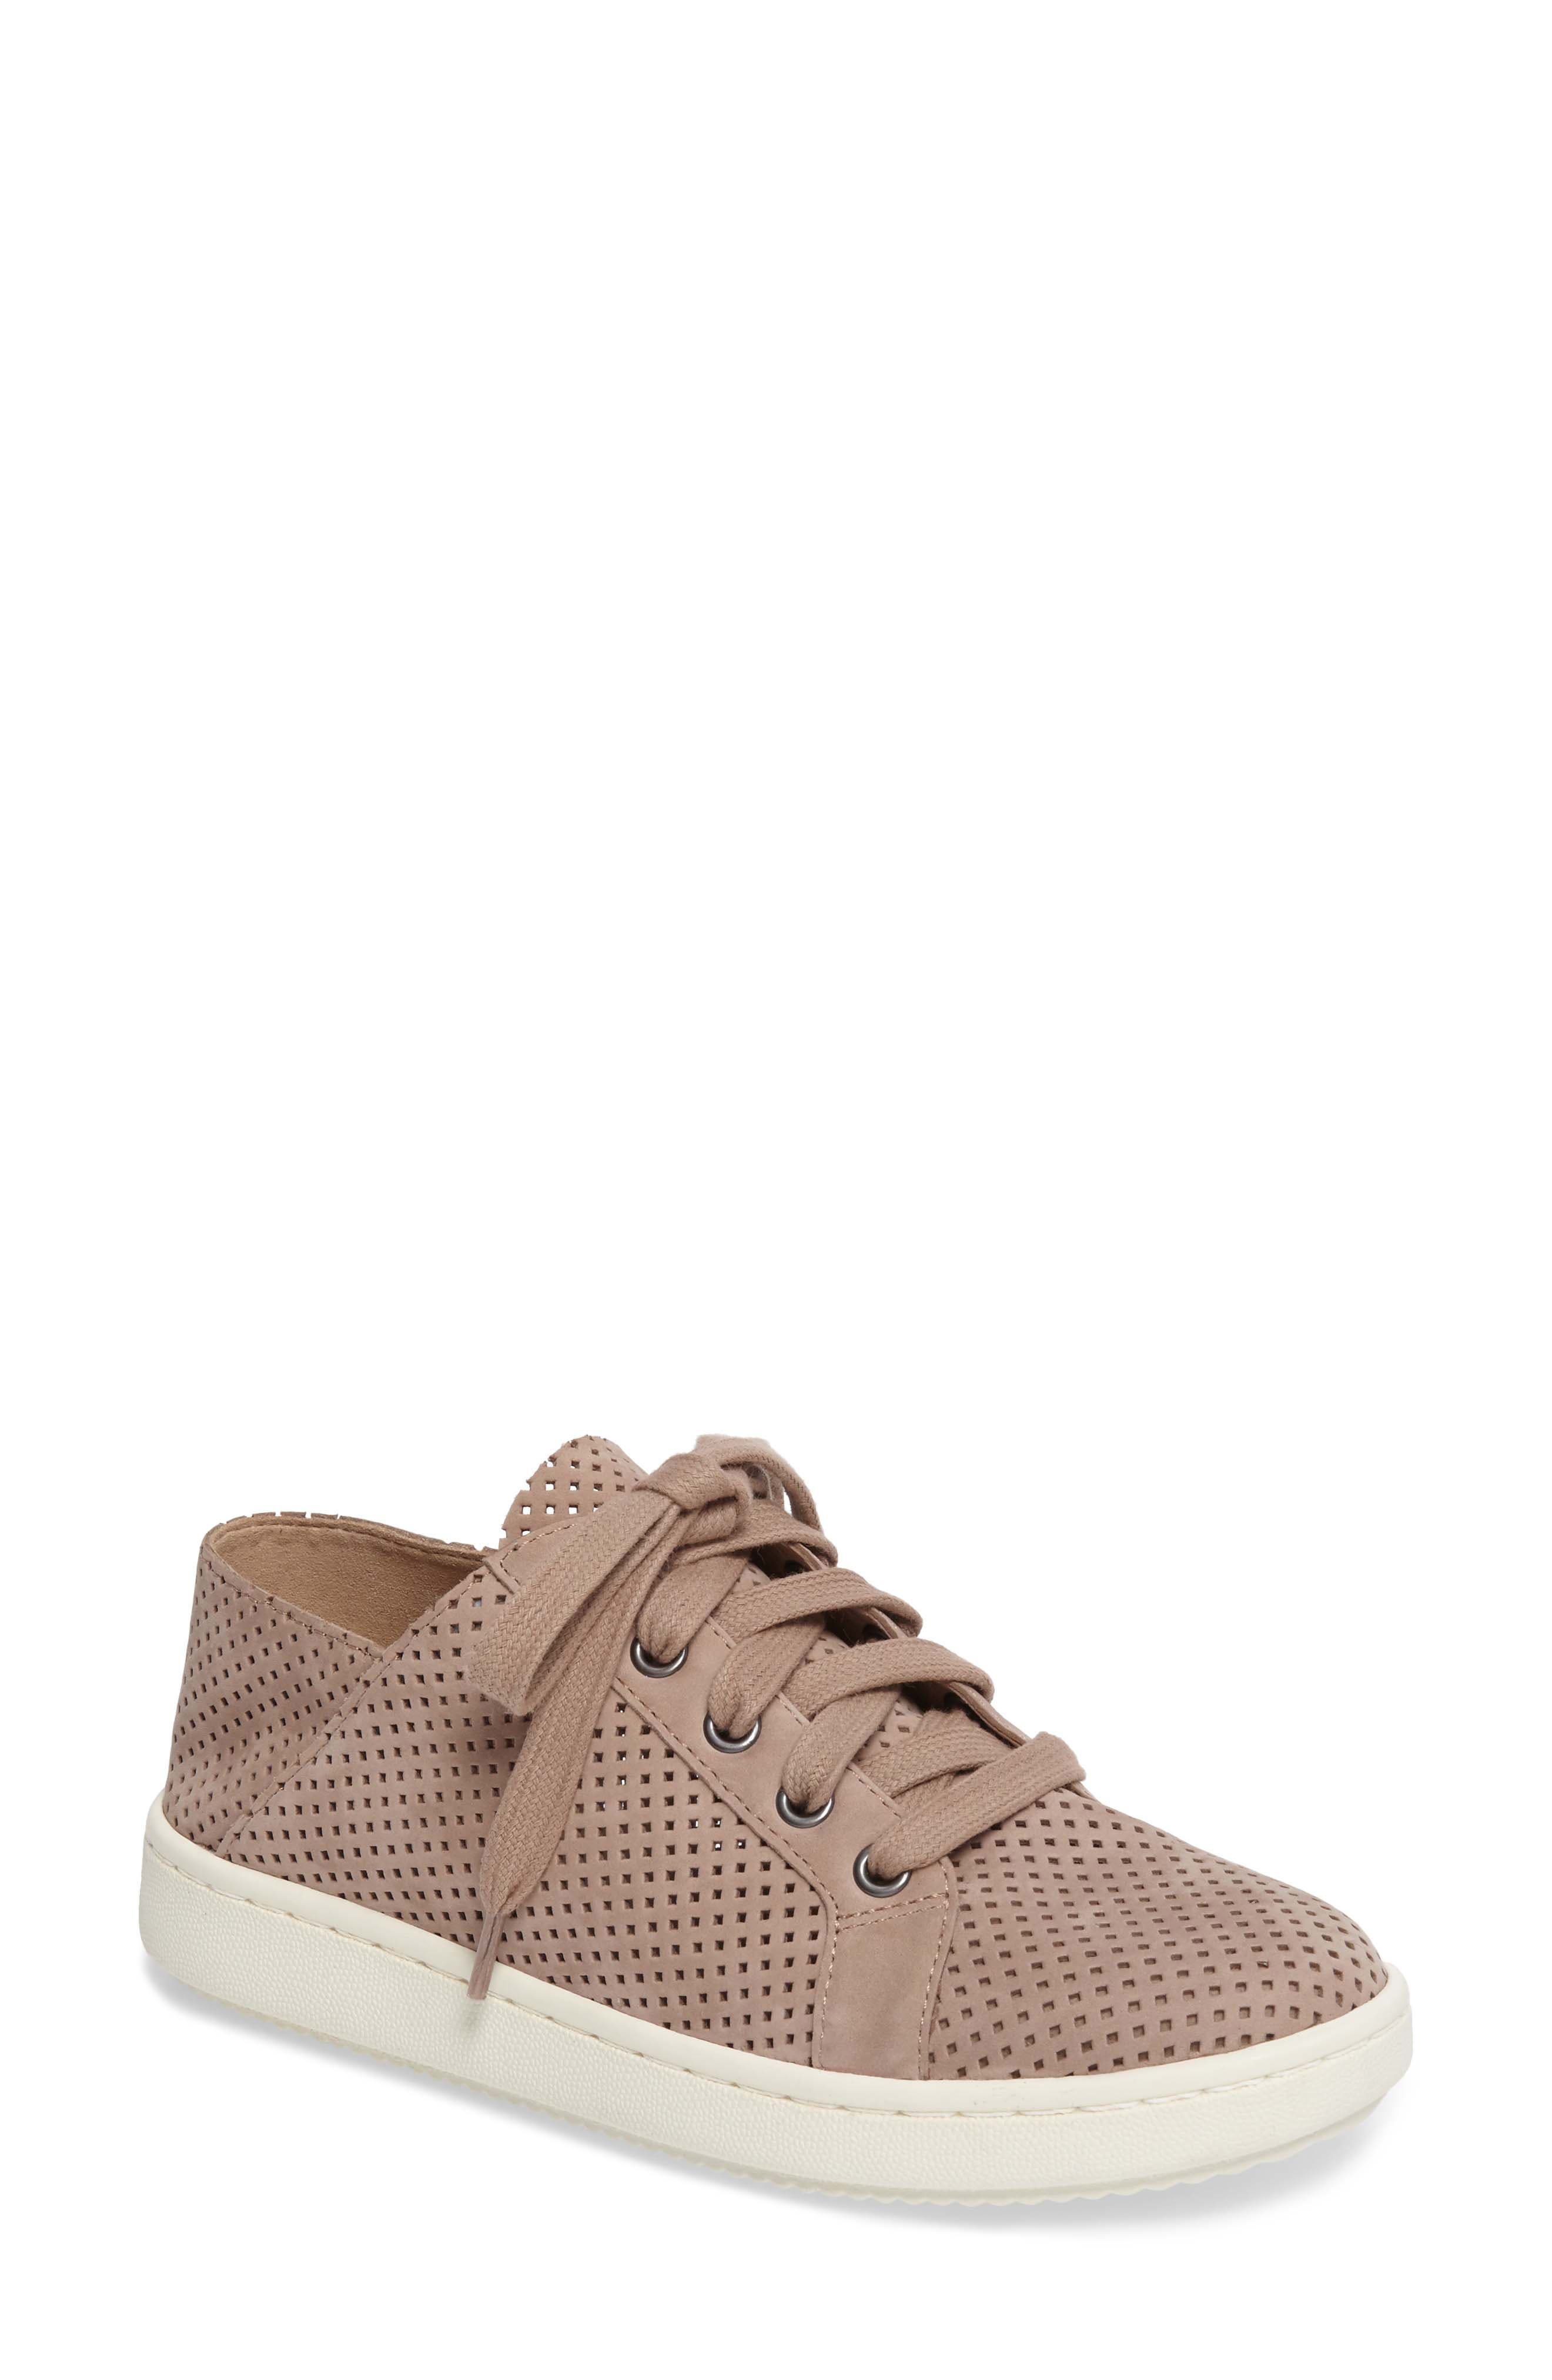 Clifton Perforated Sneaker,                             Main thumbnail 1, color,                             250